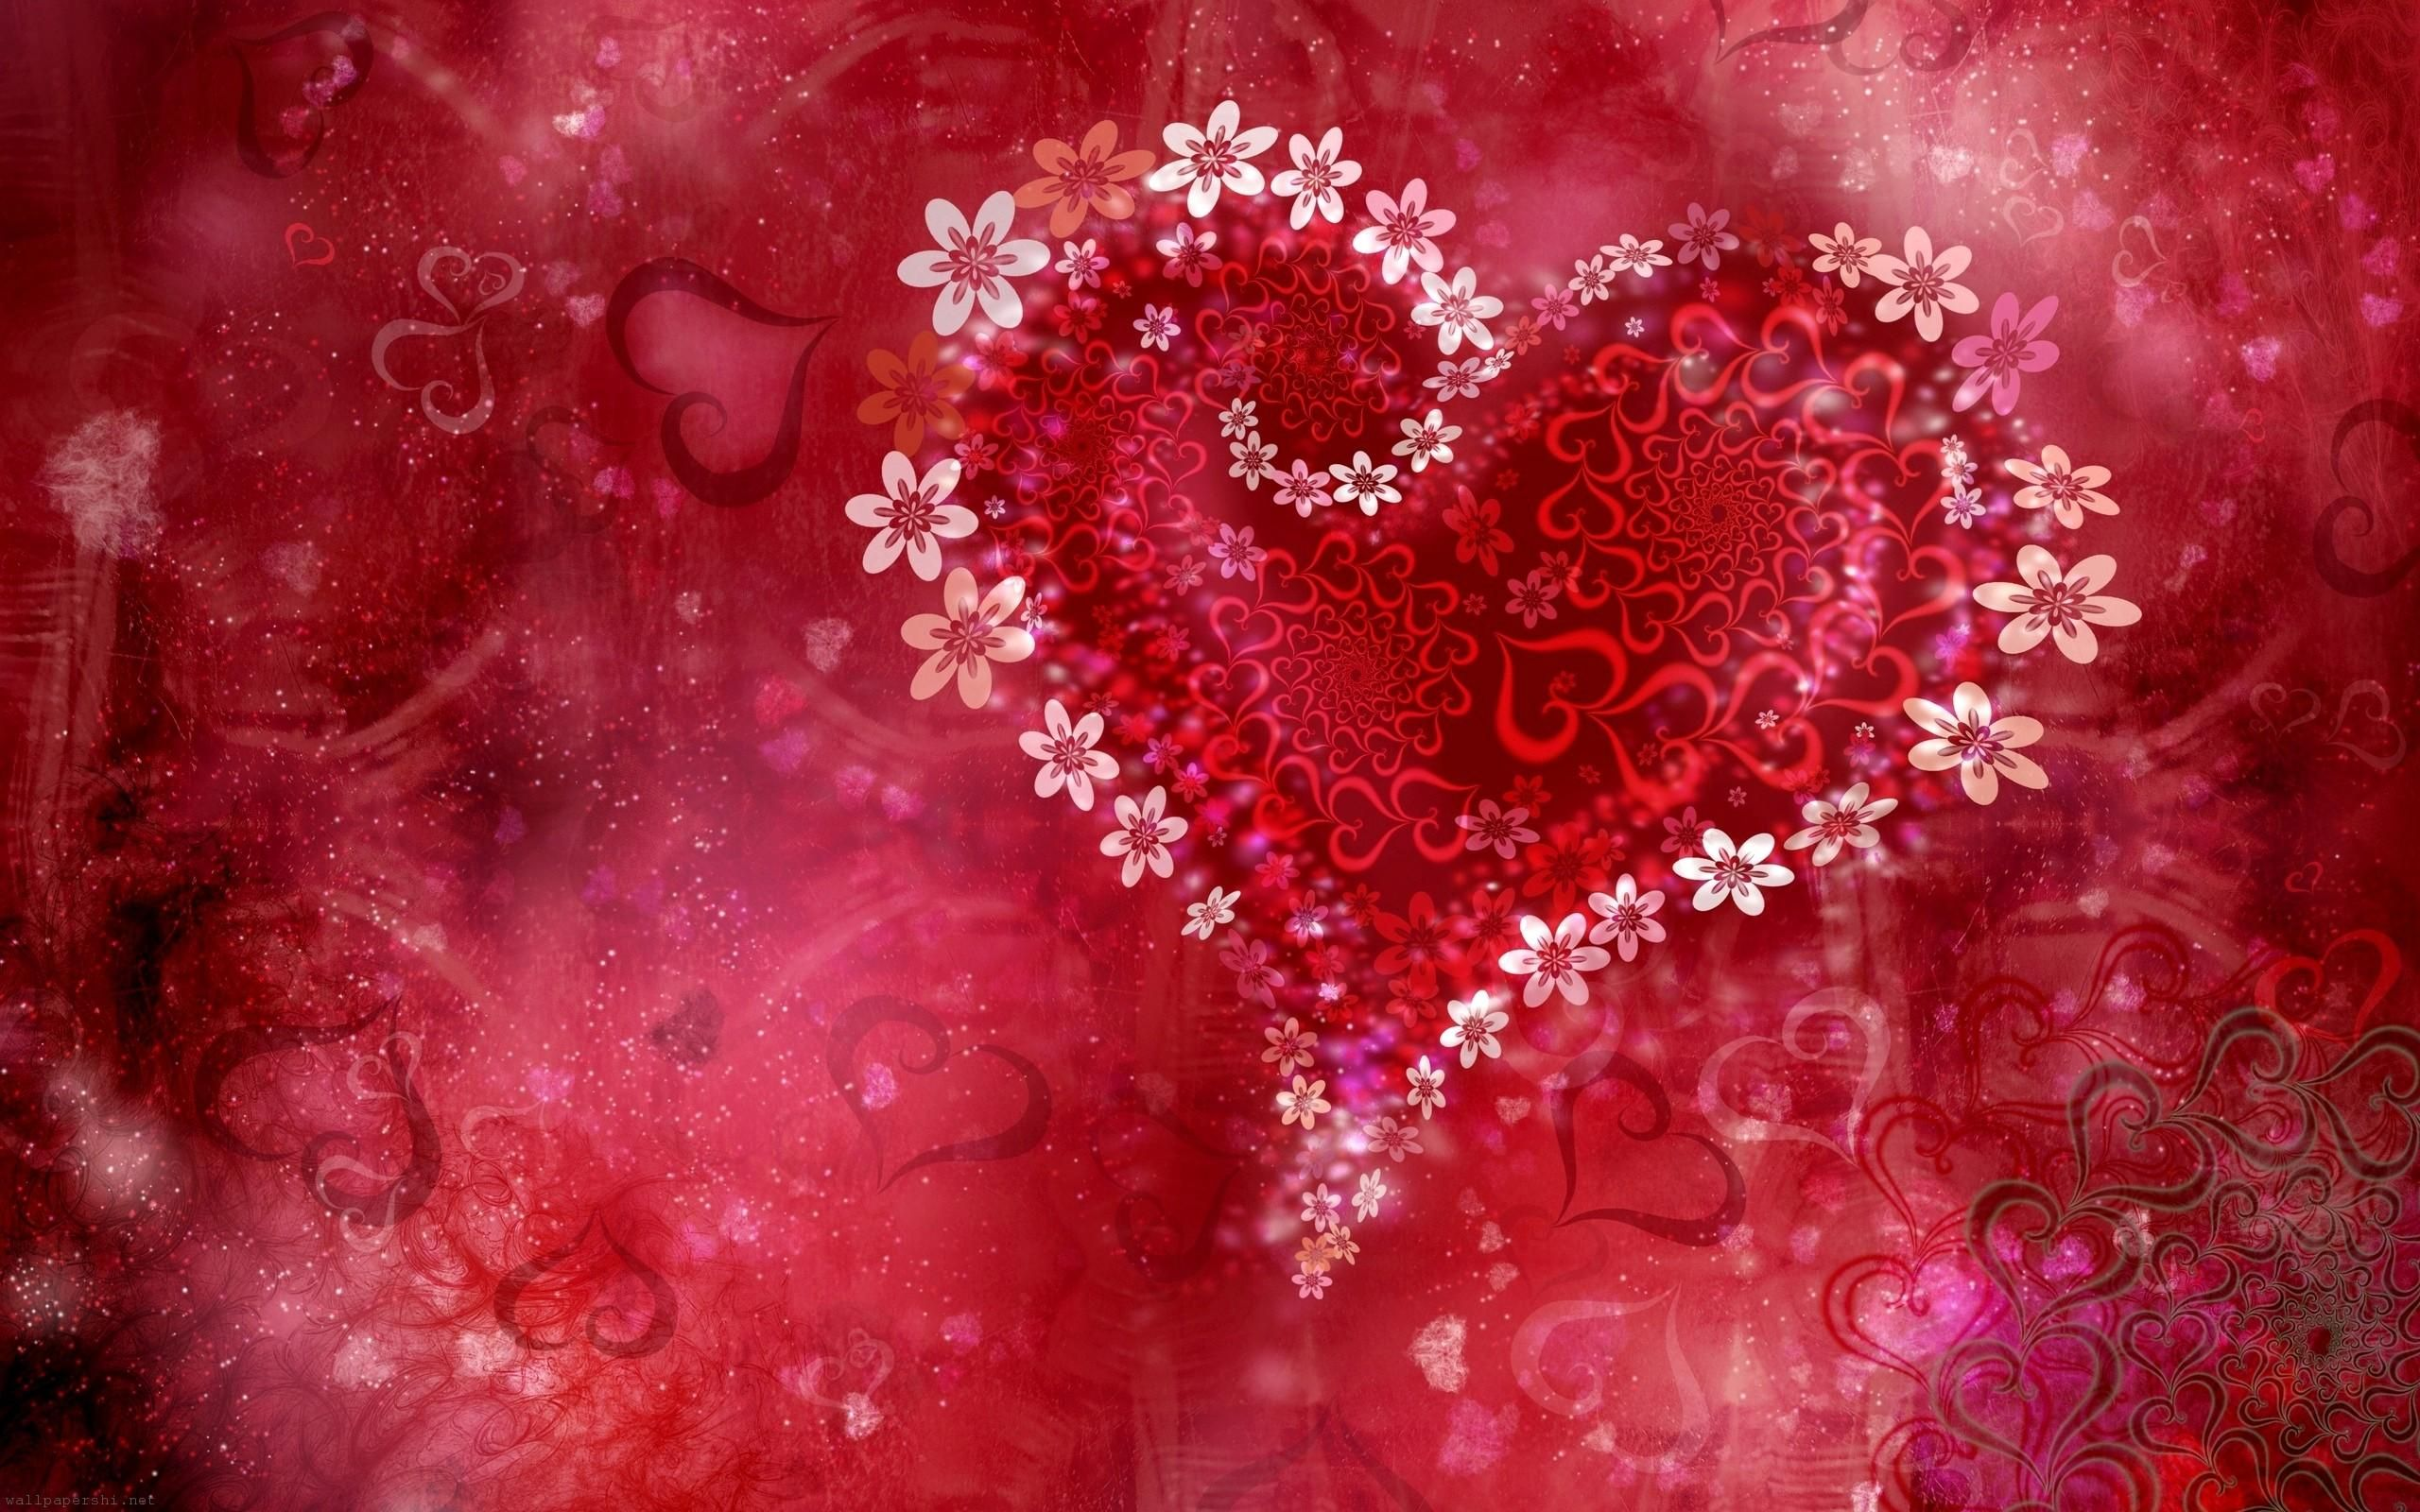 3d Heart Love Wallpapers 4852 Wallpaper: Romantic 3d Heart Love Wallpaper High Definition